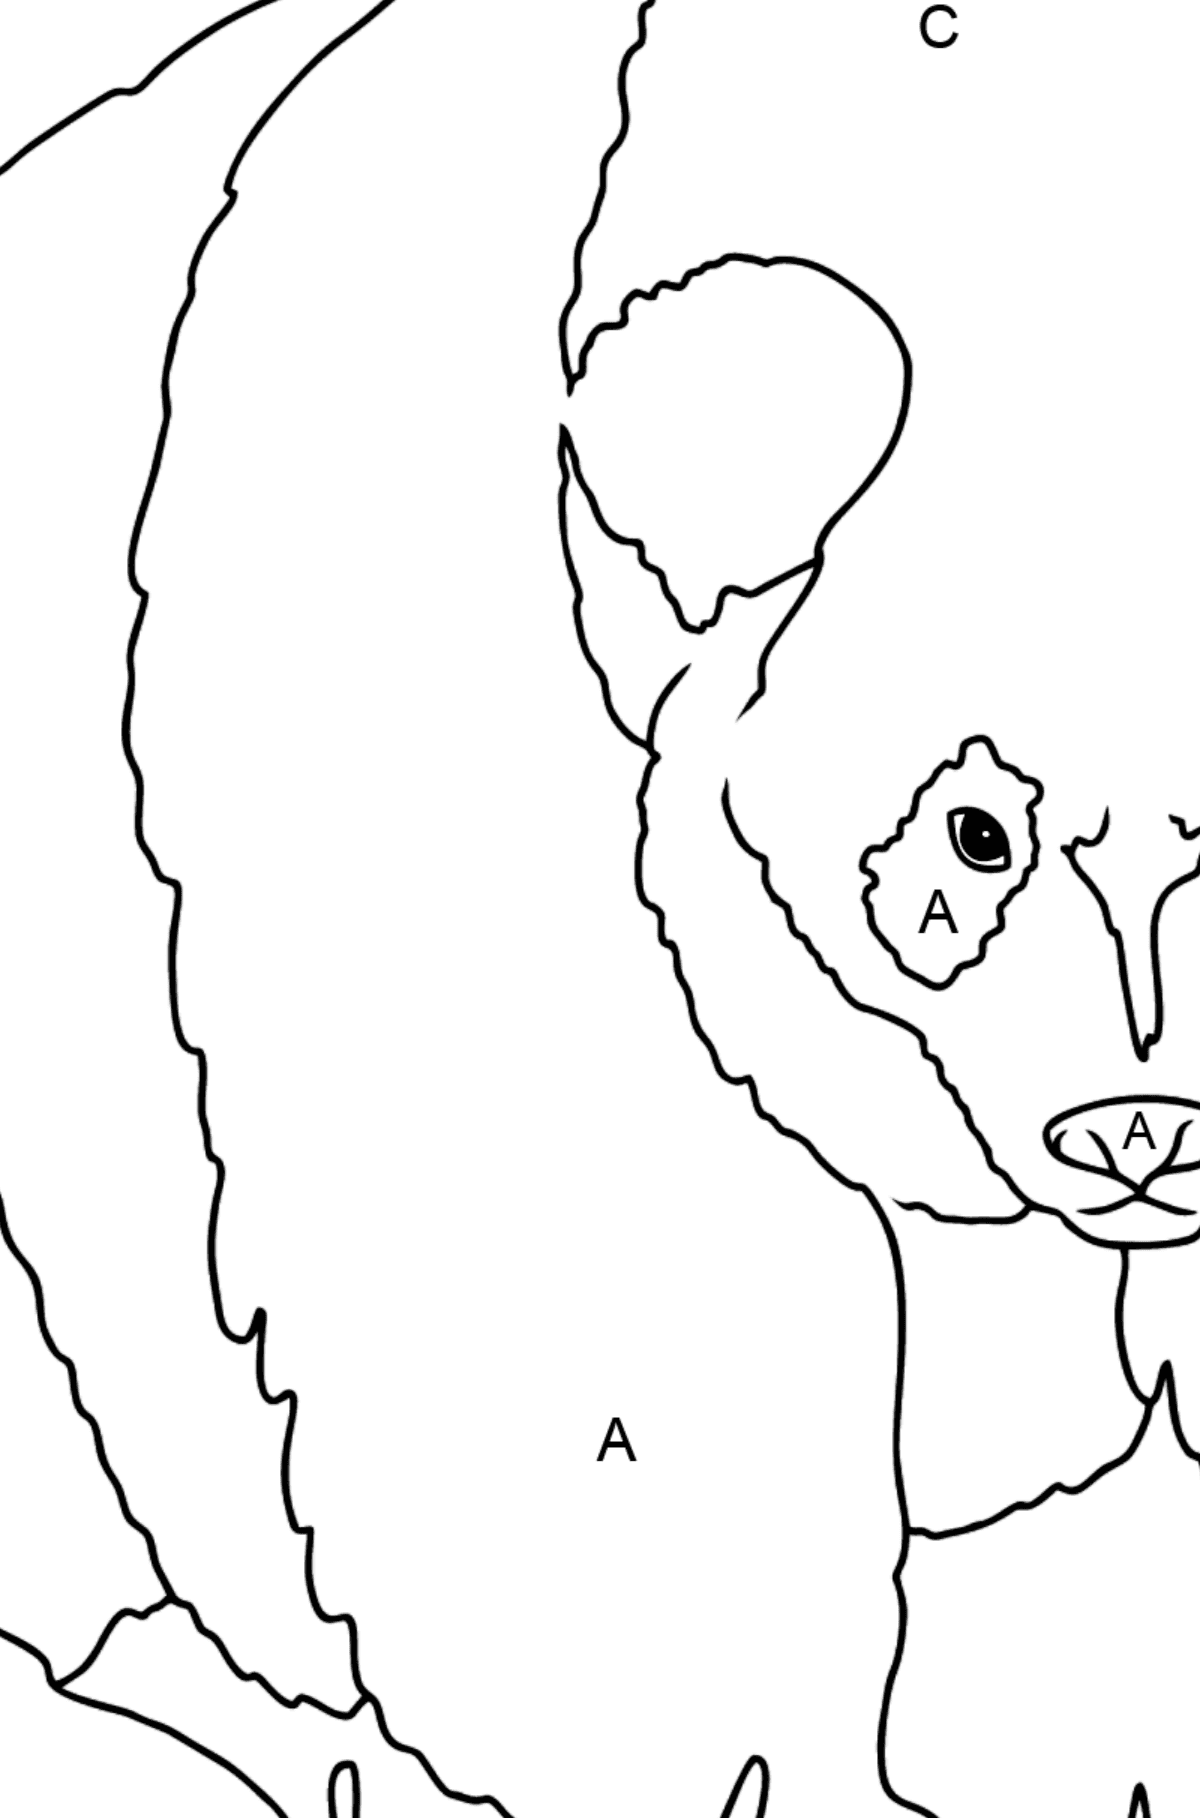 Coloring Page - A Panda is Standing - Coloring by Letters for Kids